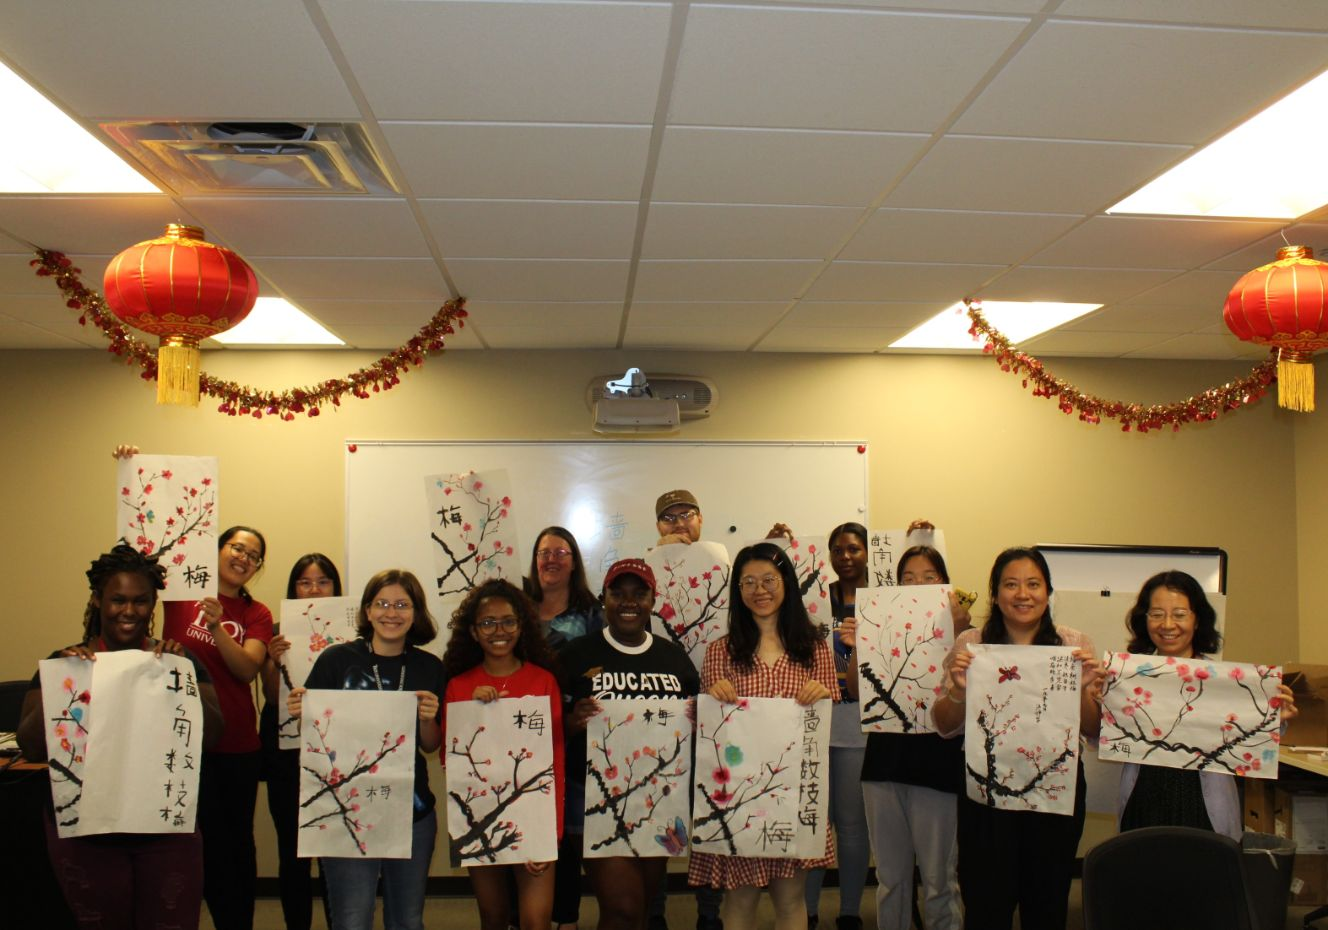 The students pose with their new artwork in a group picture.